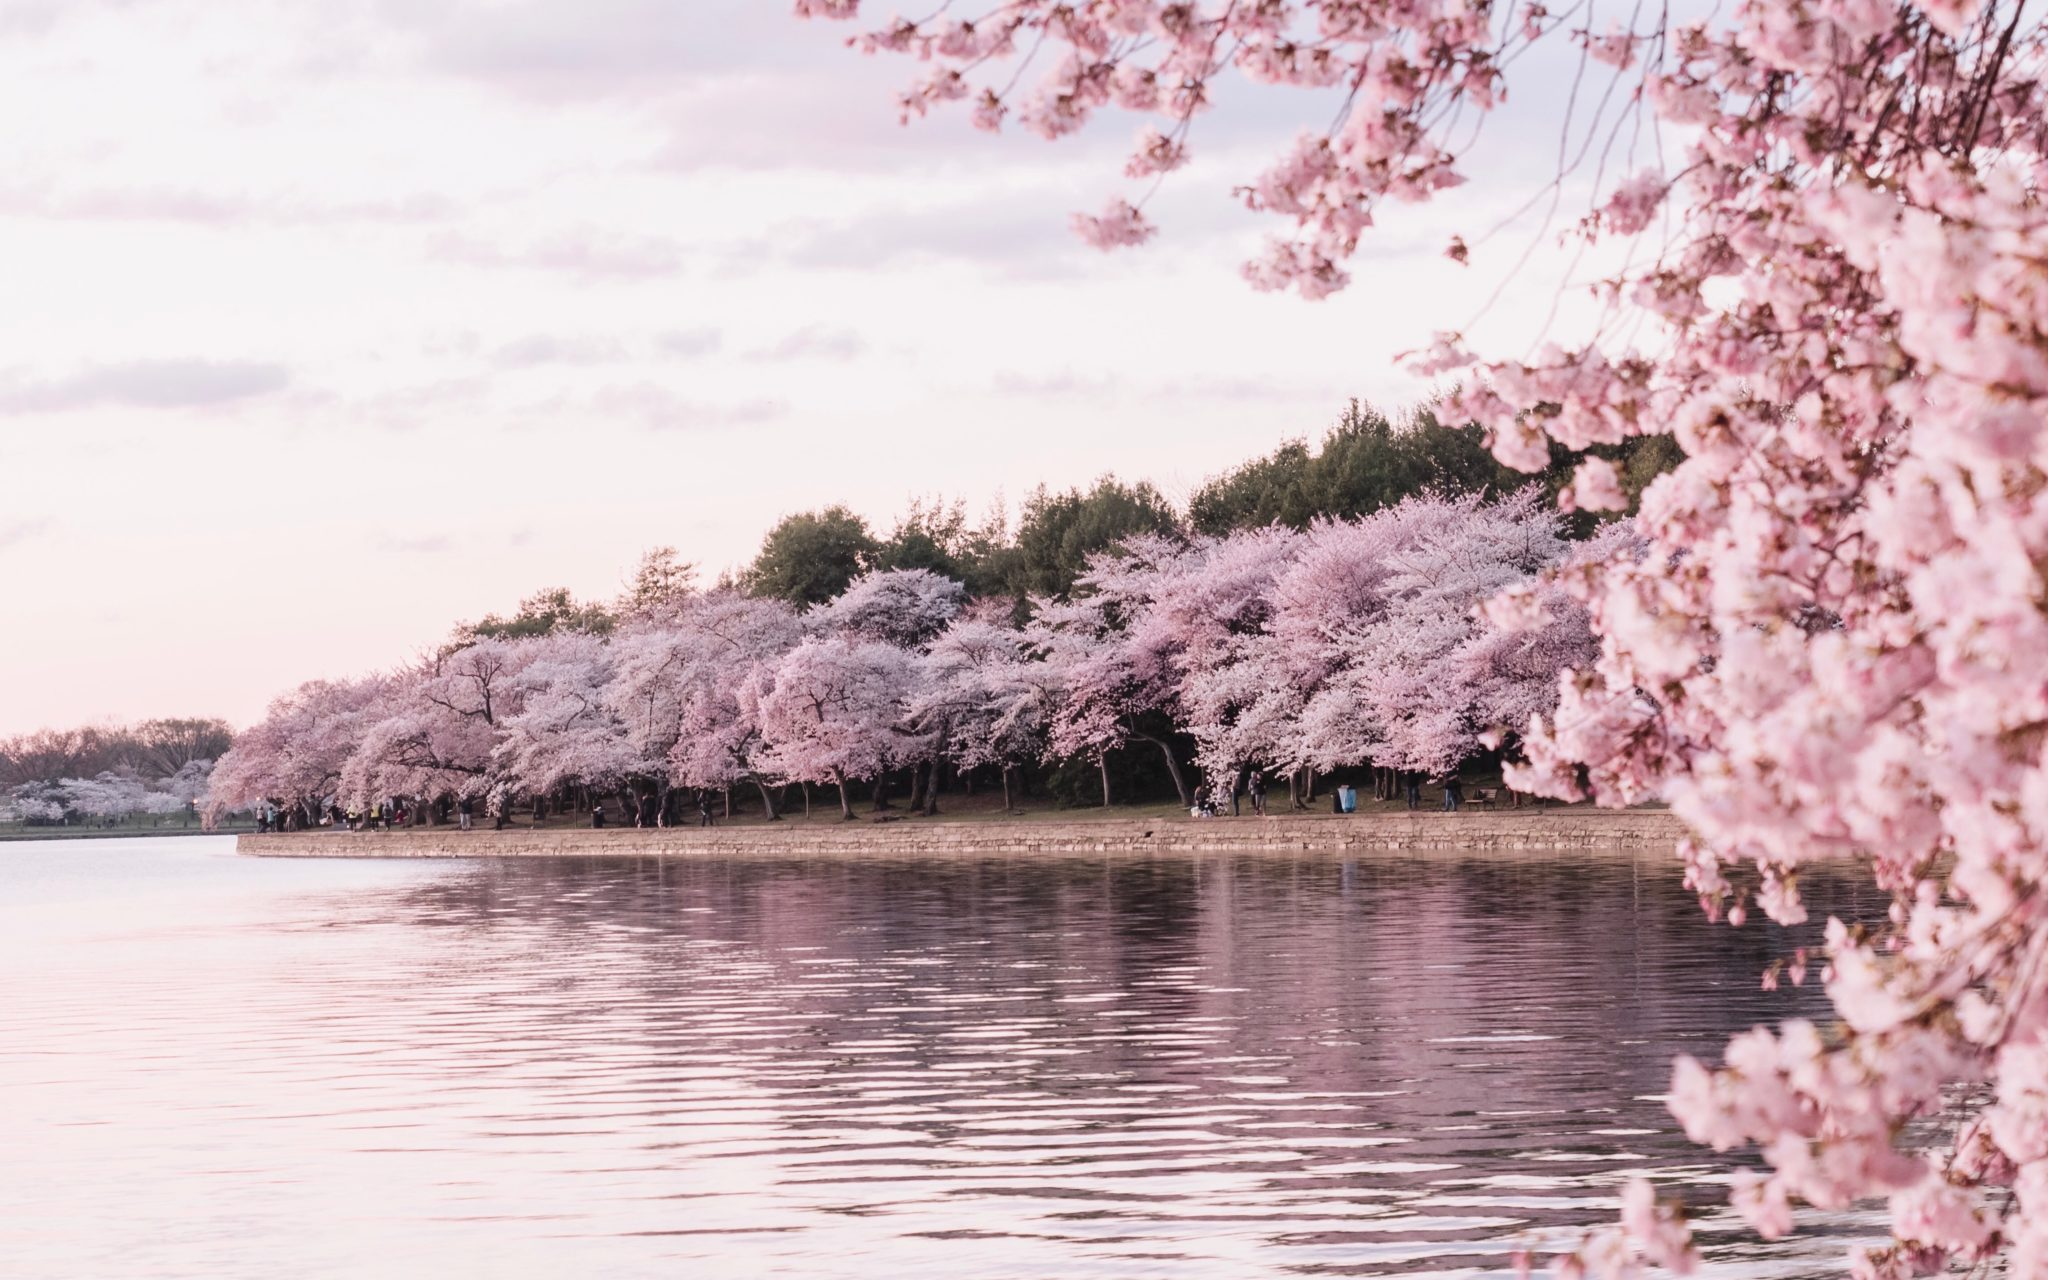 Cherry blossoms bordering a lake